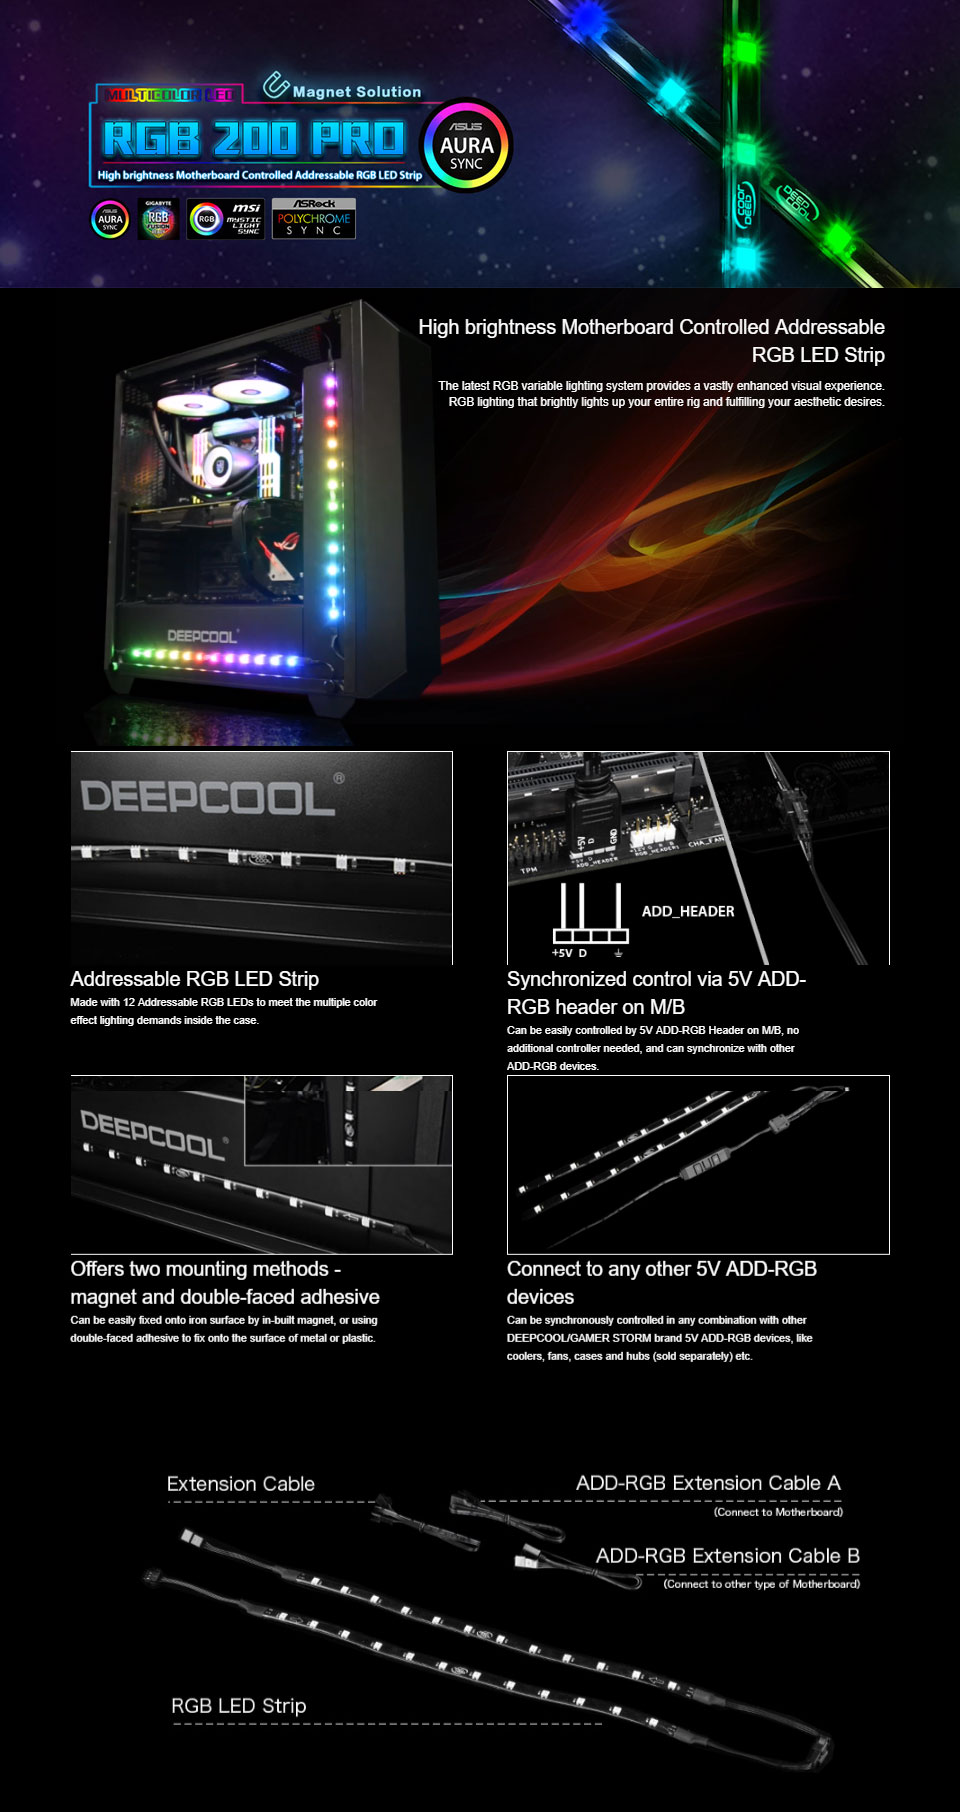 Deepcool RGB 200 Pro Addressable RGB LED Strip